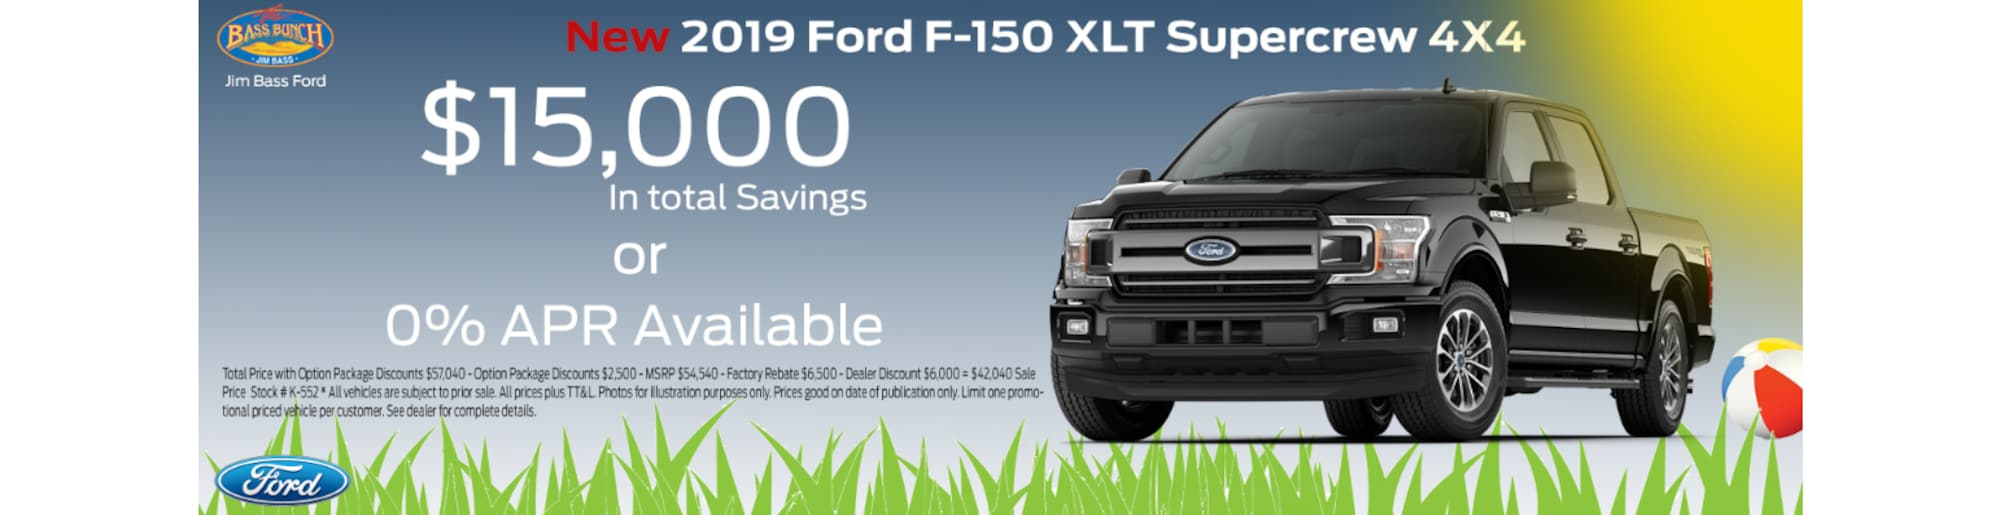 Ford Dealership Greenville Tx >> Jim Bass Ford Inc Ford Dealer In San Angelo Tx Finance Lease